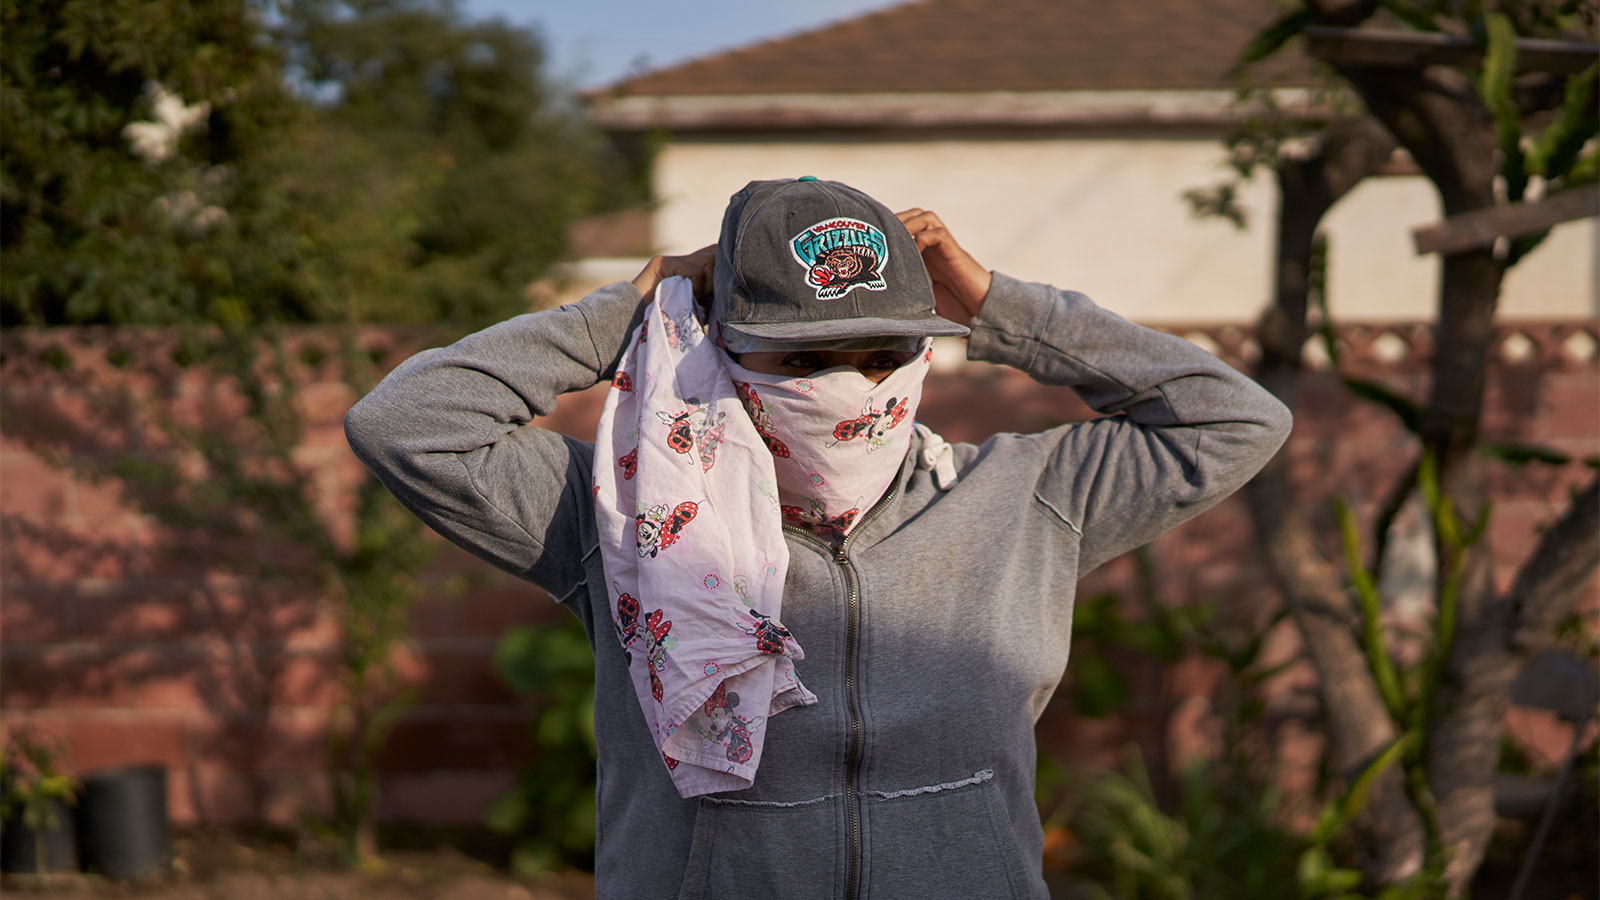 a woman ties a bandana around her face while wearing a hat and standing in front of a sunny house